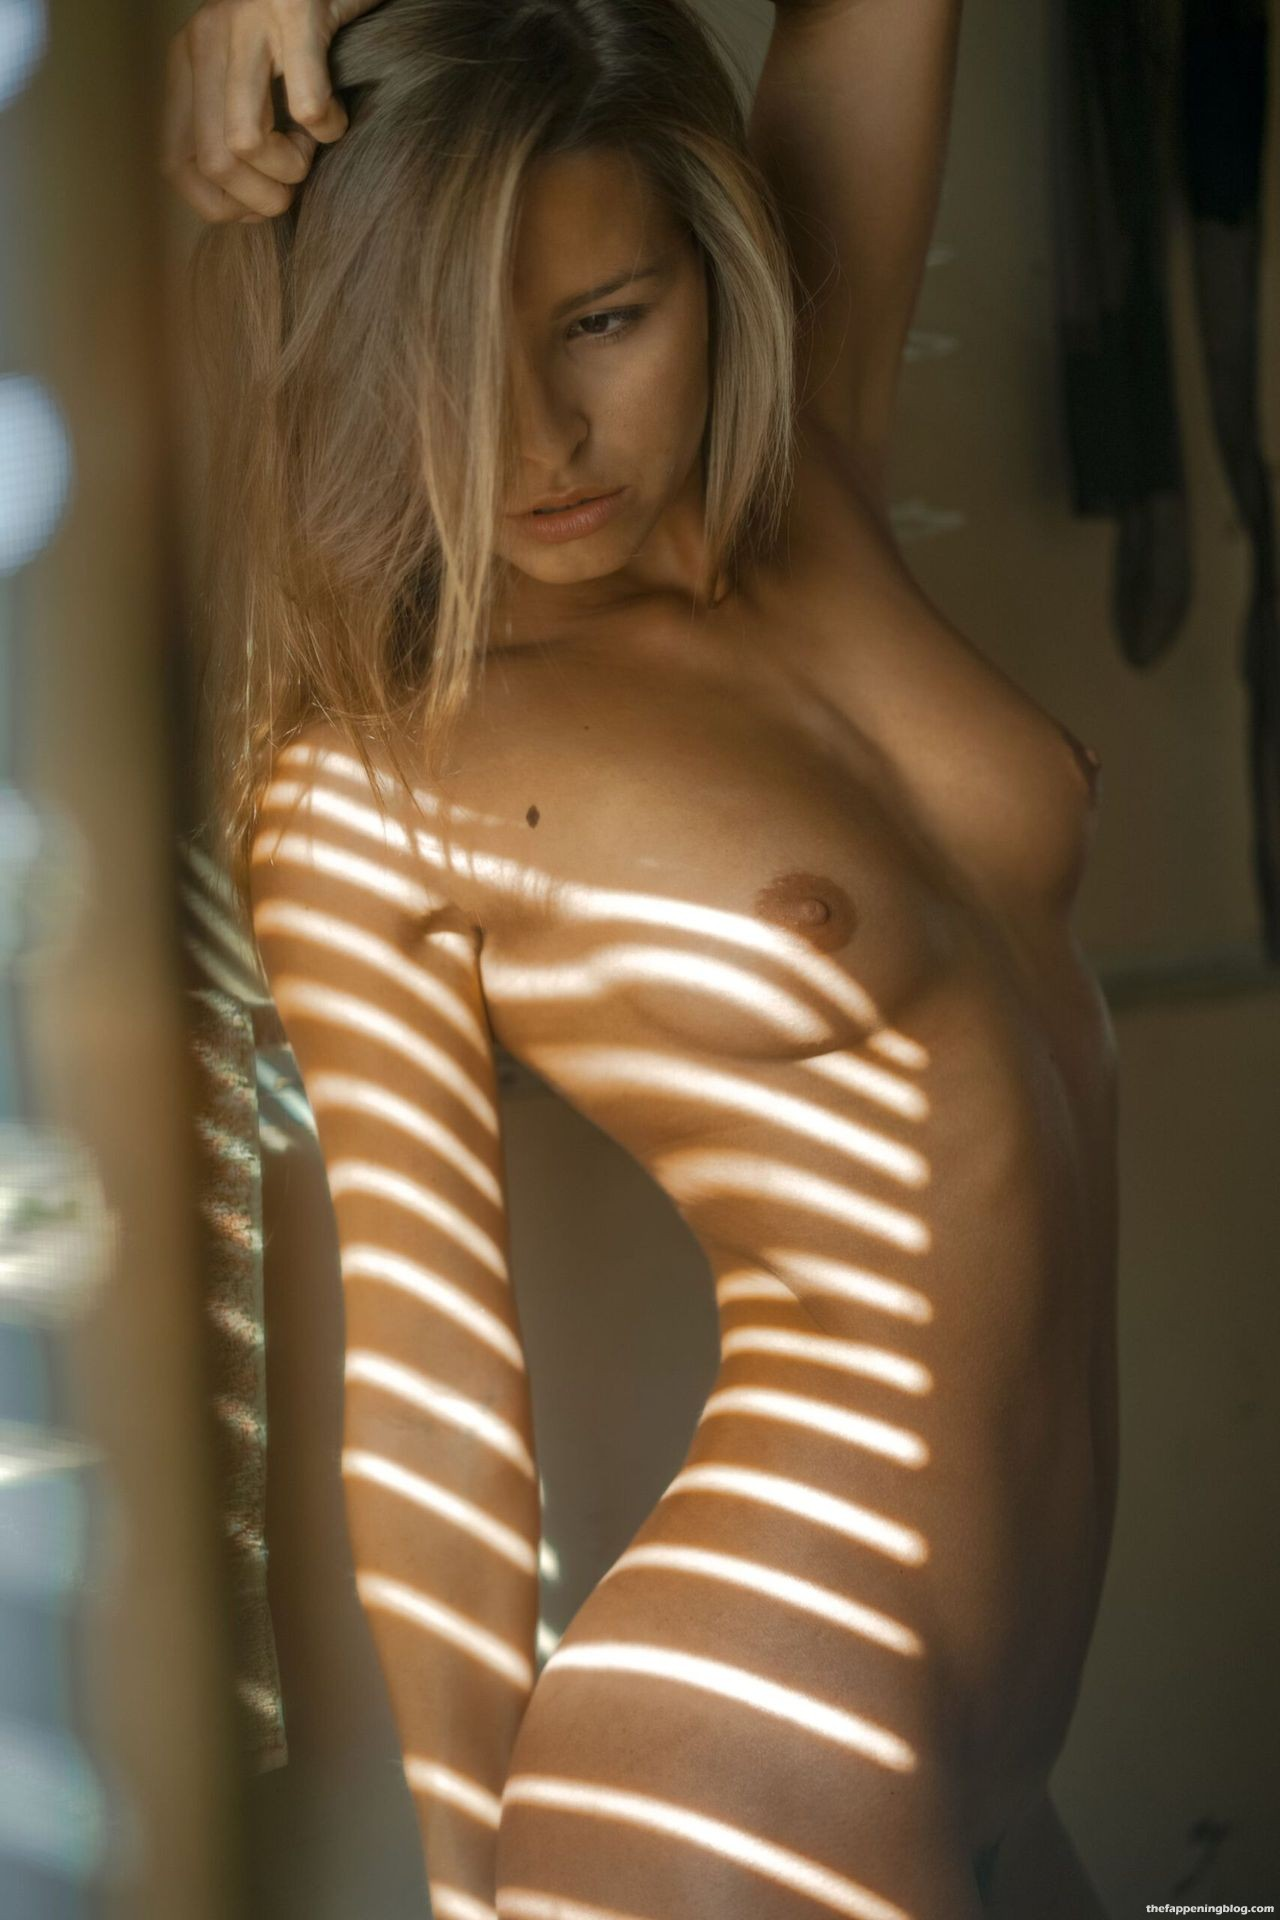 Marisa-Papen-Stunning-Naked-Body-4-scaled1-thefappeningblog.com_.jpg